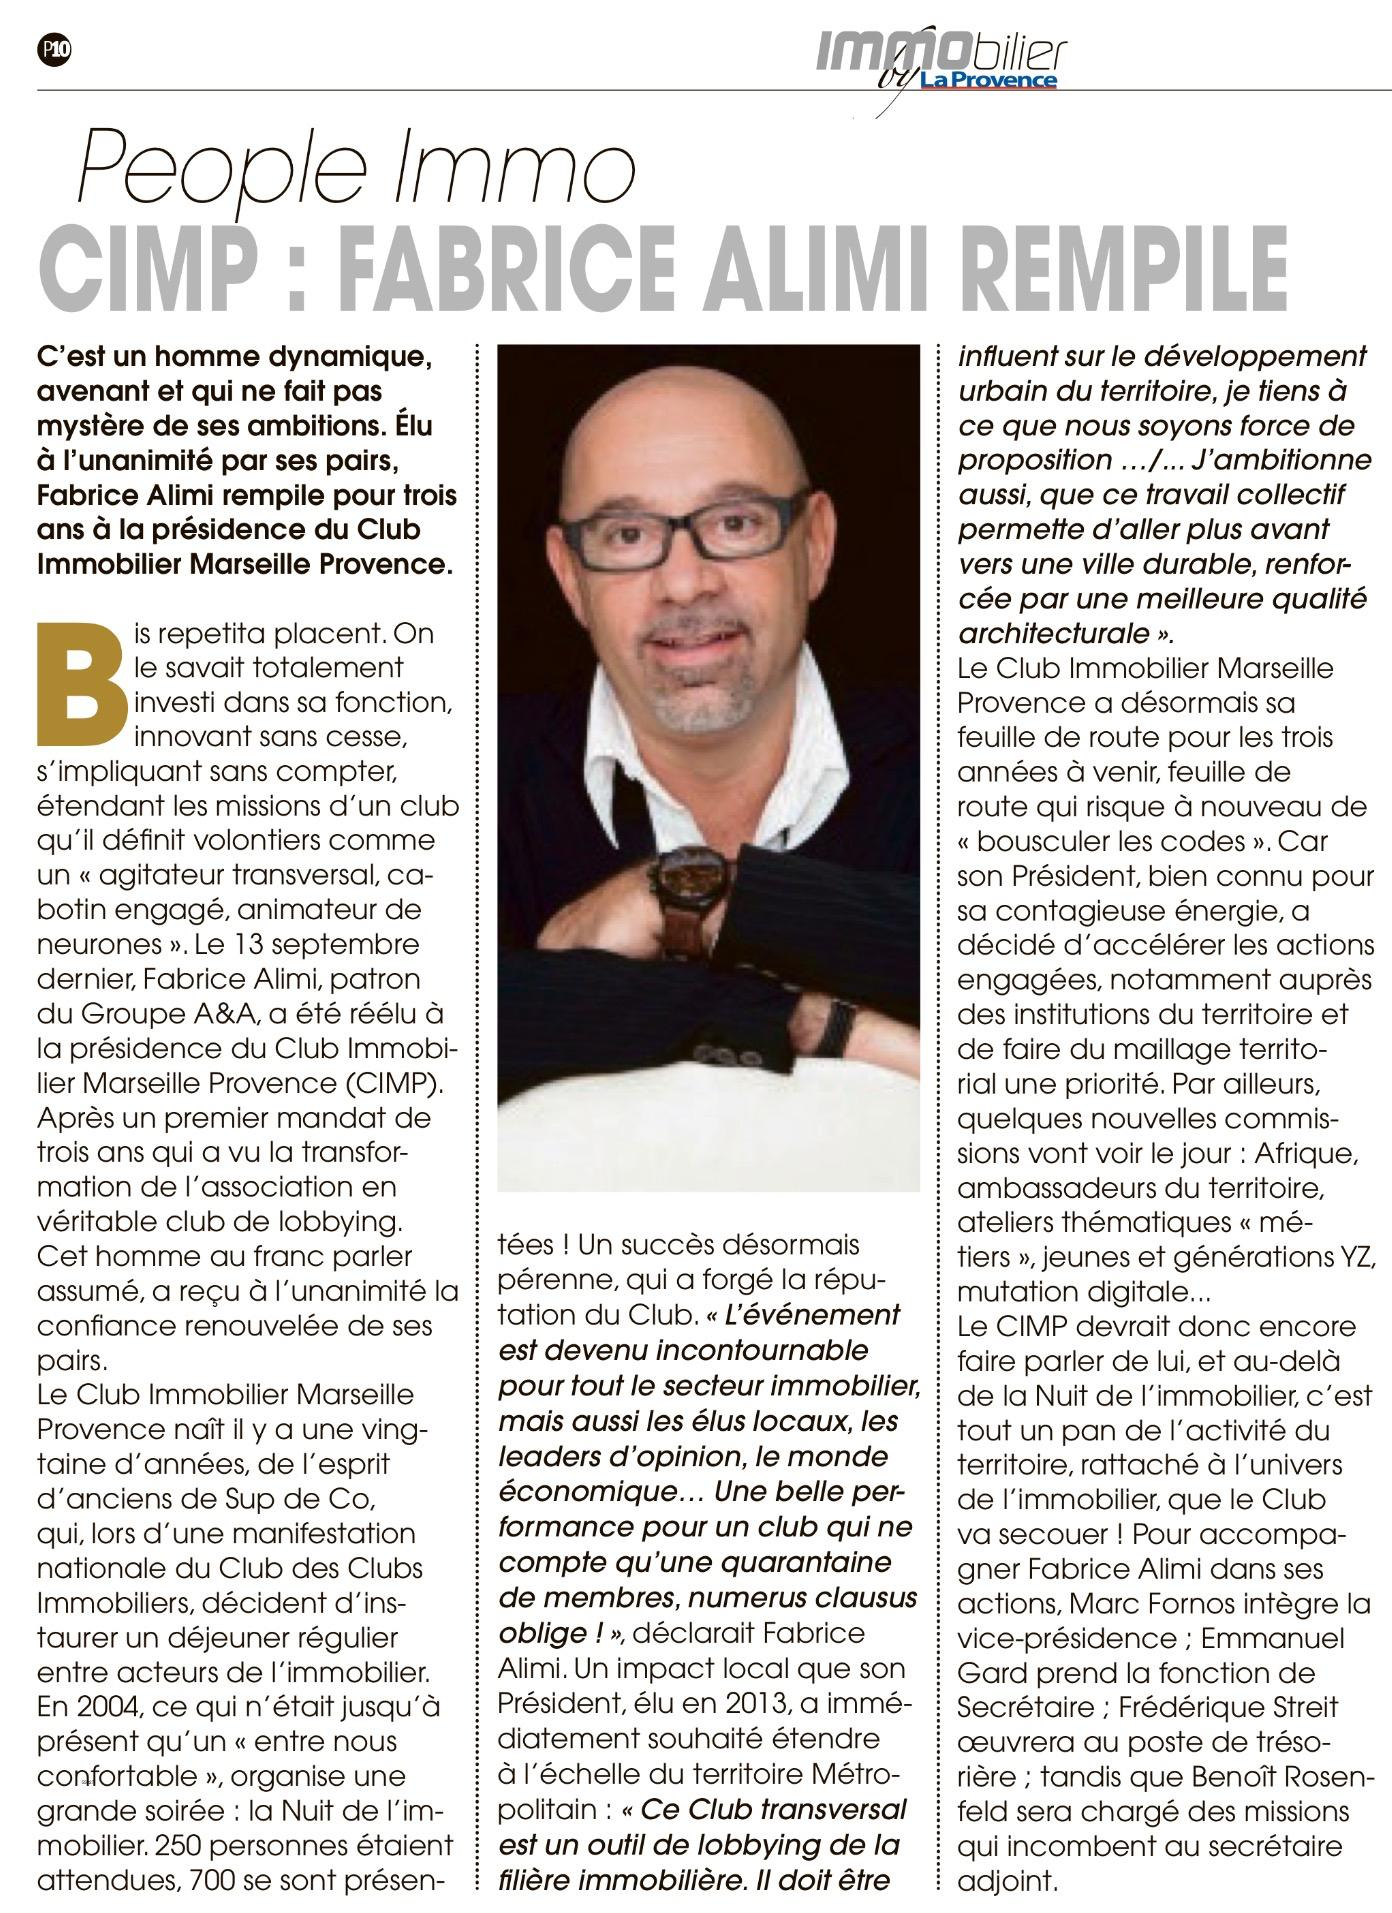 PEOPLE IMMO, CIMP : FABRICE ALIMI REMPLIE (Immobilier by La Provence, le 06/10/2016)